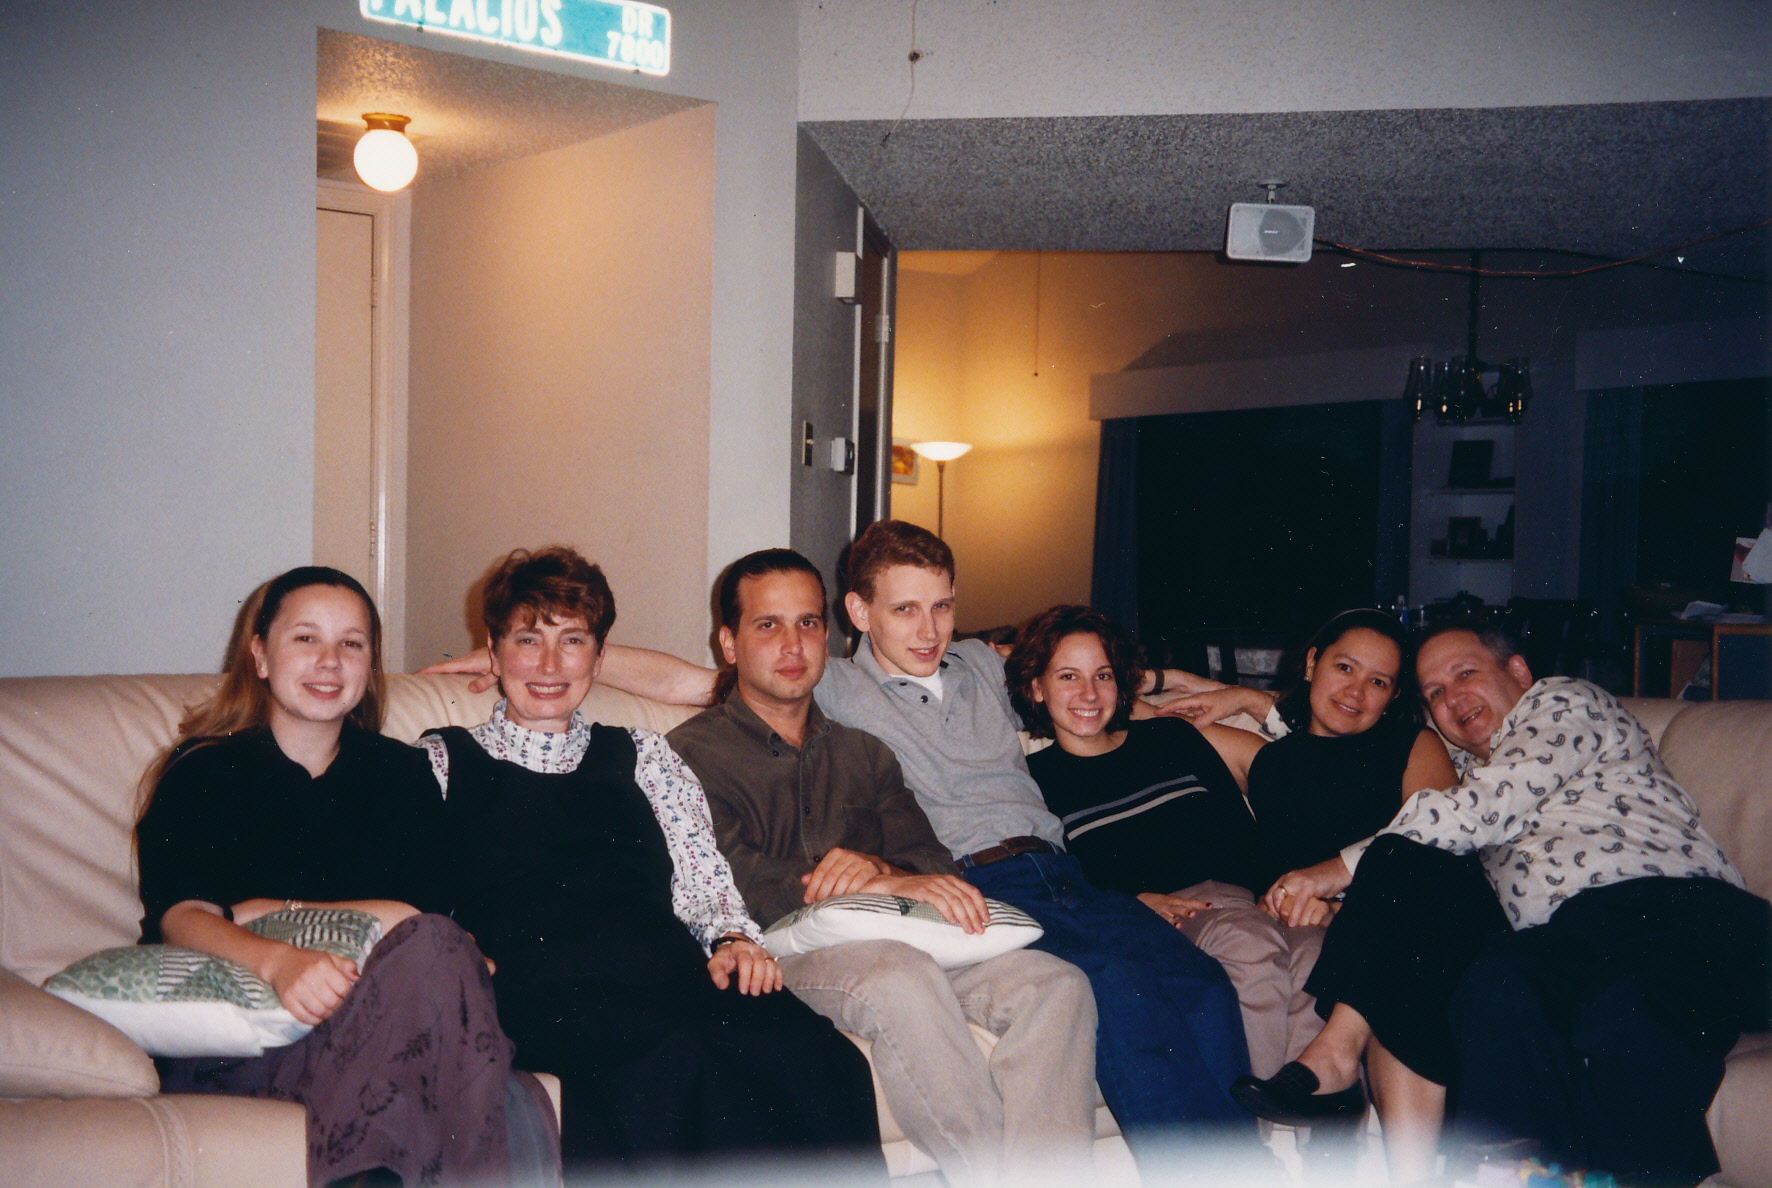 Thanksgiving 1999. (L-R) Cheryl Mayoff, Denise Mayoff, Jeffrey Mayoff, Rob Mayoff, Beth Mayoff, Delia Hoker, Bernie Mayoff